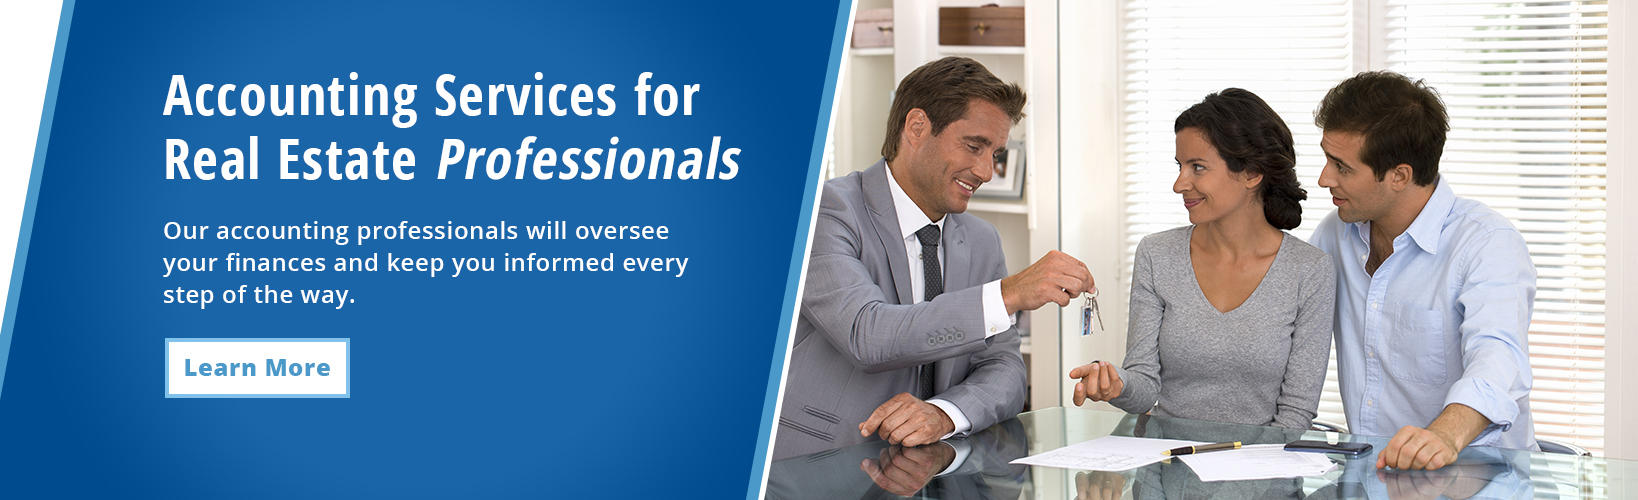 Accounting for real estate professionals